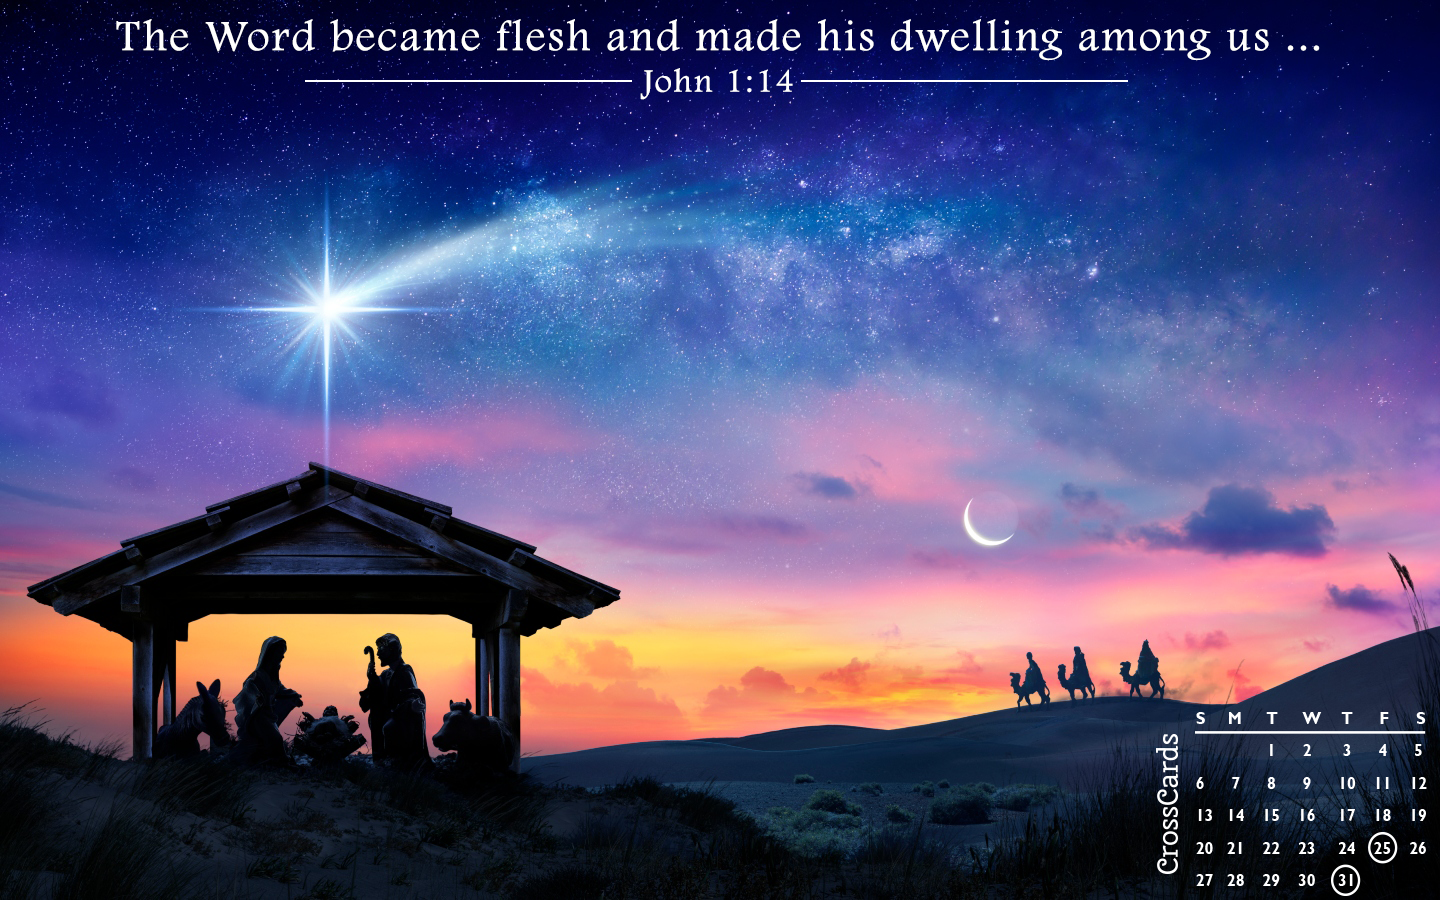 December 2020 - Nativity mobile phone wallpaper